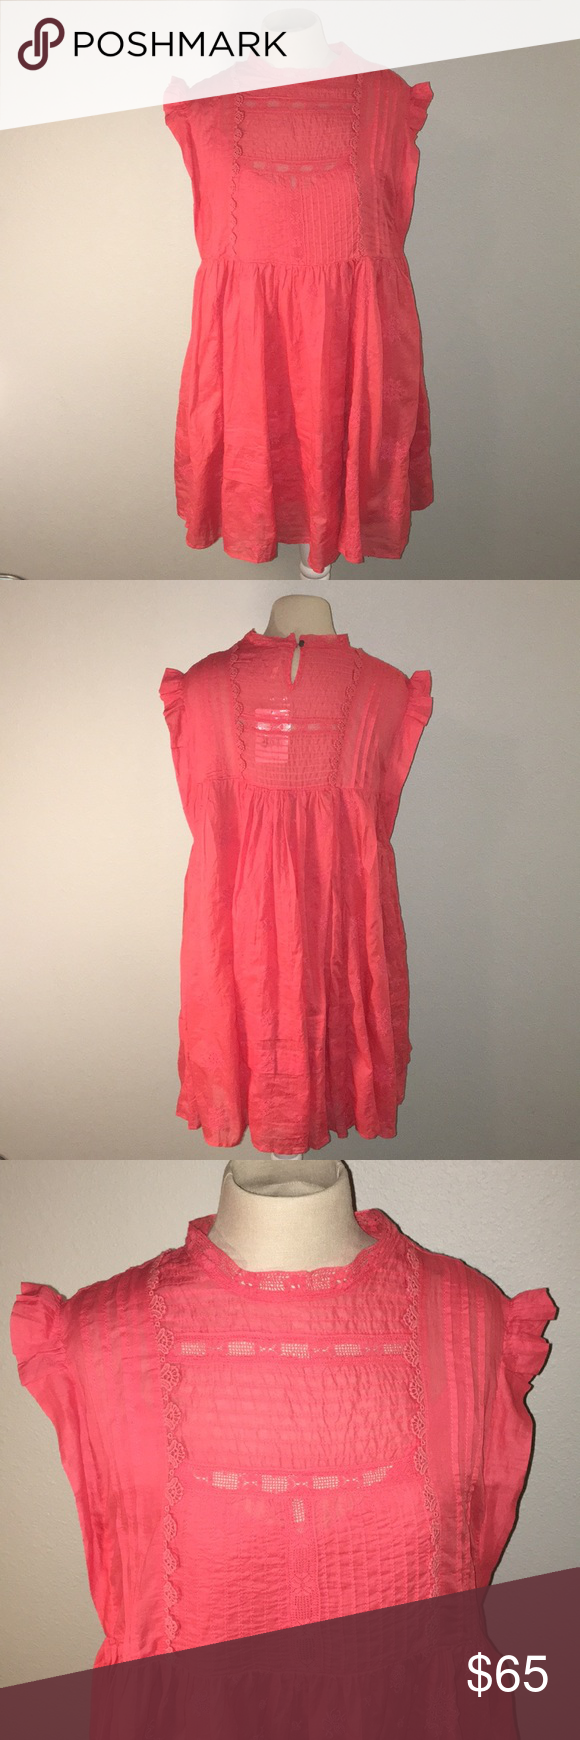 """f8c55db9ab16 NWT Free People Nobody Like You Dress NWT Free People Nobody Like You  Embellished Mini Dress in Coral Kiss. 100% Cotton Removable slip 34"""" long  shoulder to ..."""